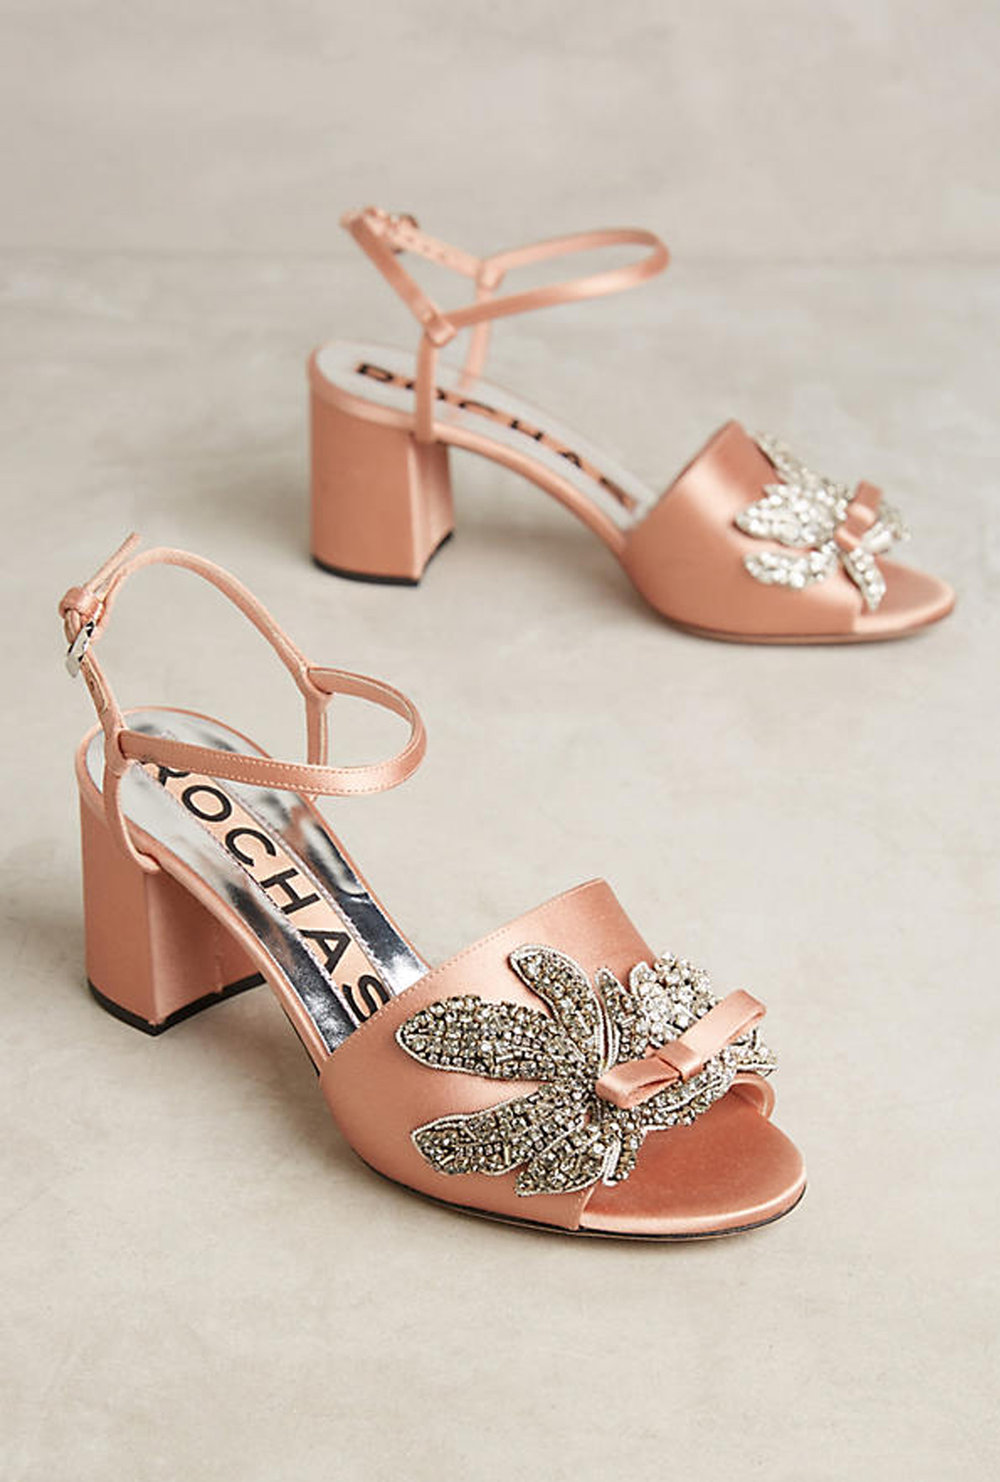 rochas satin sandals | @themissprints